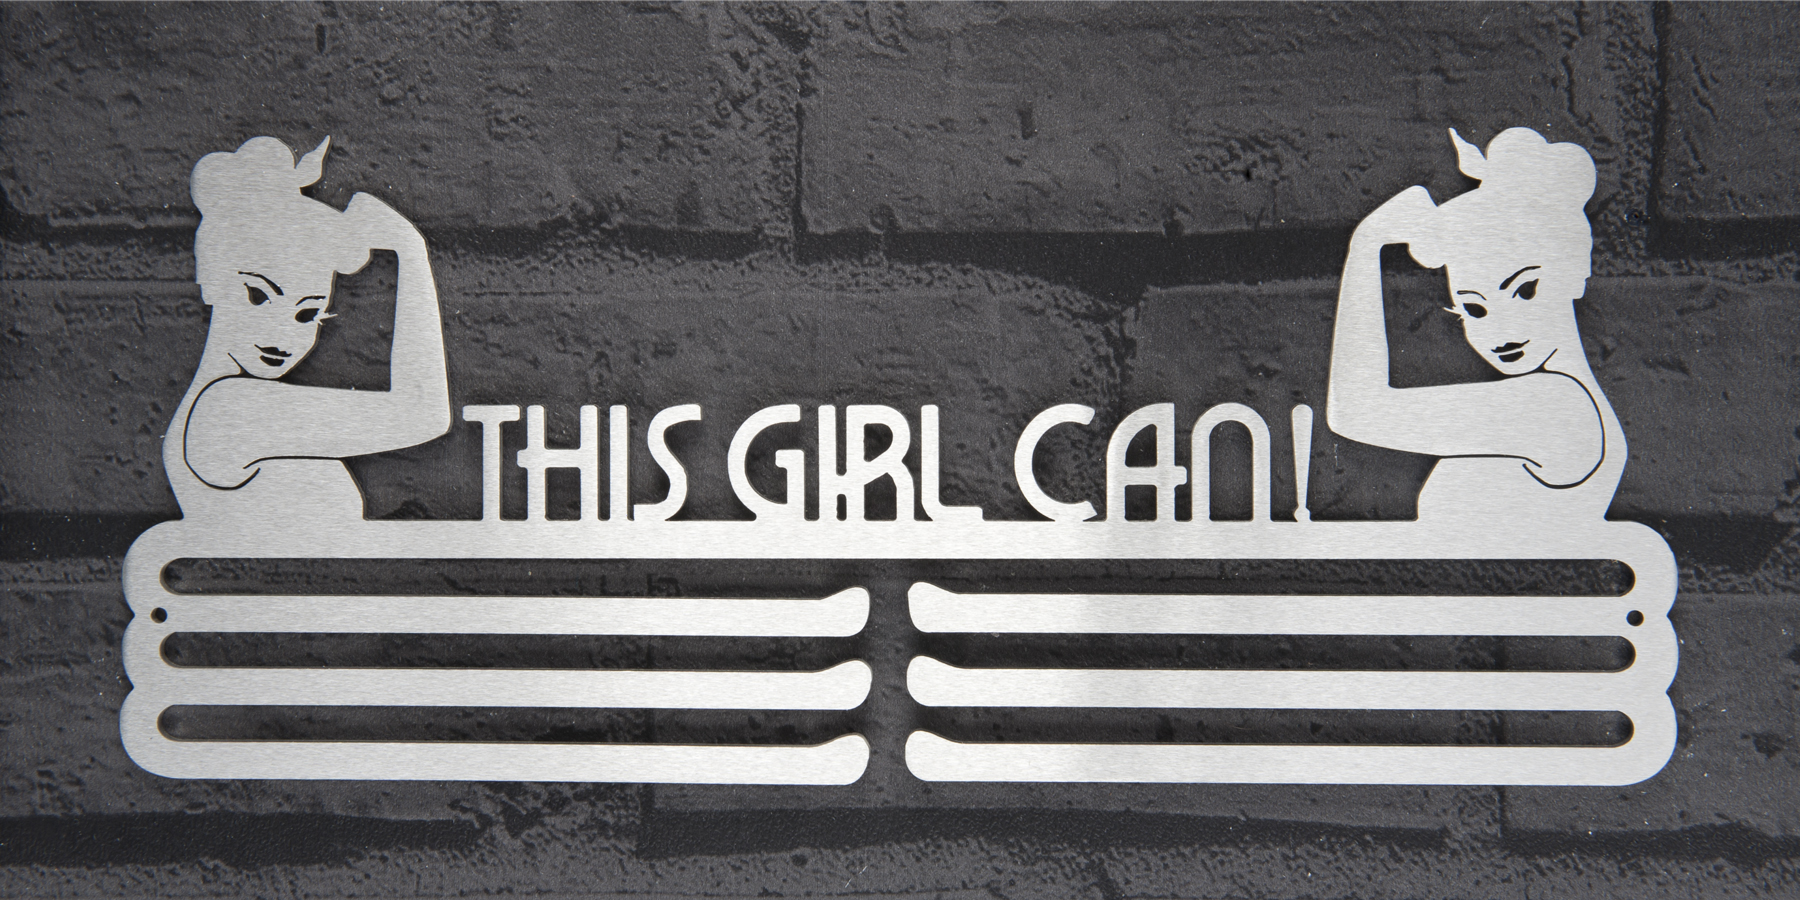 This Girl Can Stainless Steel Medal Hanger Display